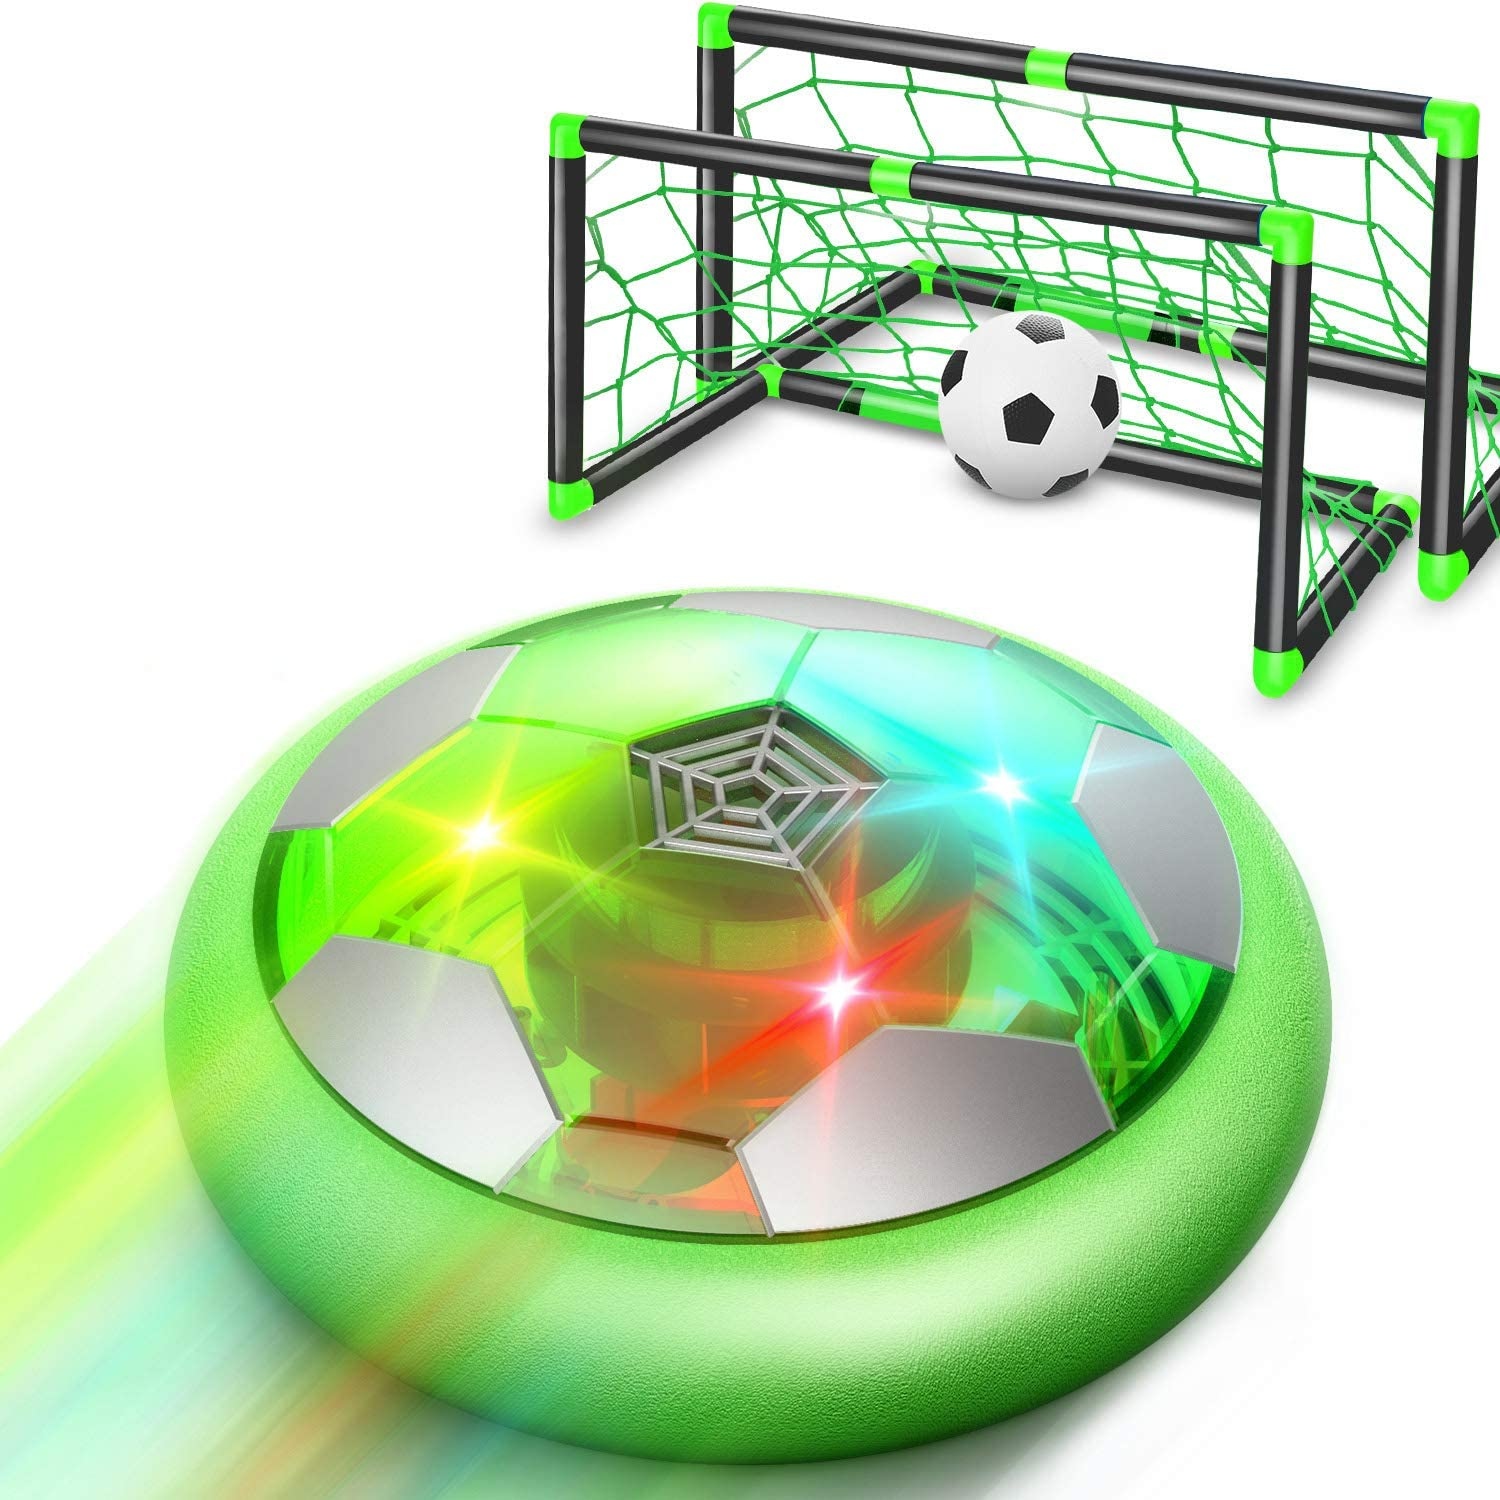 WisToyz Hover Soccer Ball Set Rechargeable Hover Soccer Set with Goals & Nets, Indoor Hover Soccer & Rubber Soccer Ball Included, Soccer Net Hover Soccer Set for Backyard, Toys for Boys Girls Kids: Toys & Games